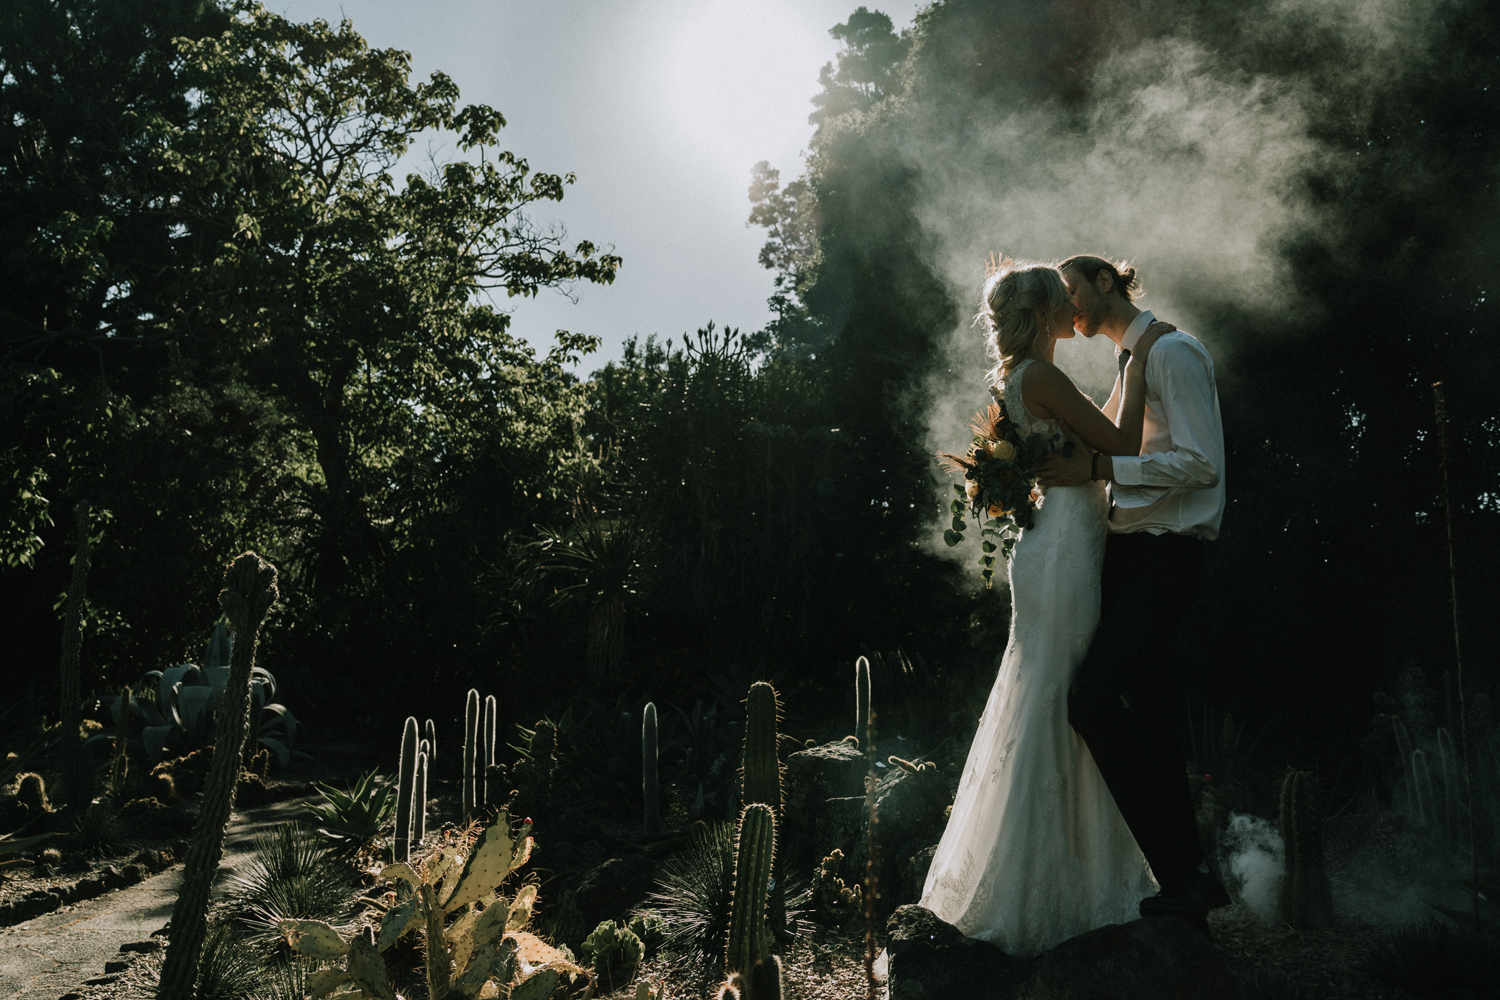 Pre wedding kissing in the forest in the smoke sunset sunrise